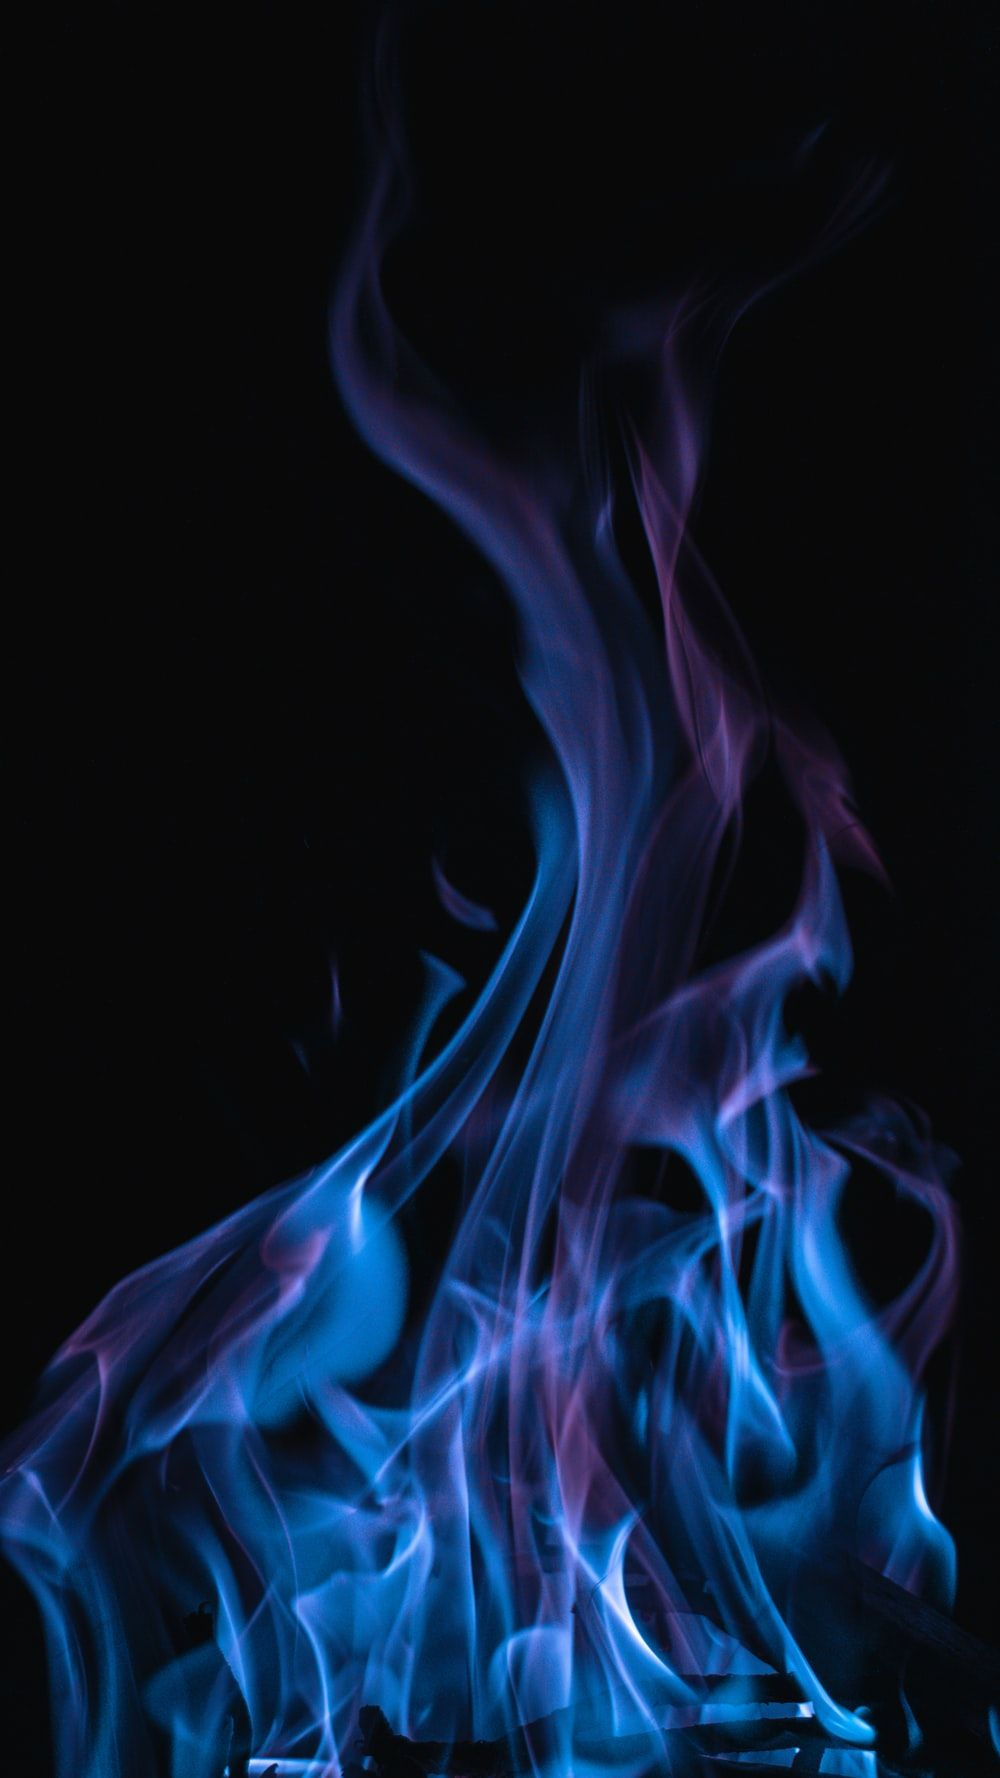 Blue And Purple Flame In 2020 Blue Aesthetic Dark Black And Blue Wallpaper Dark Blue Wallpaper